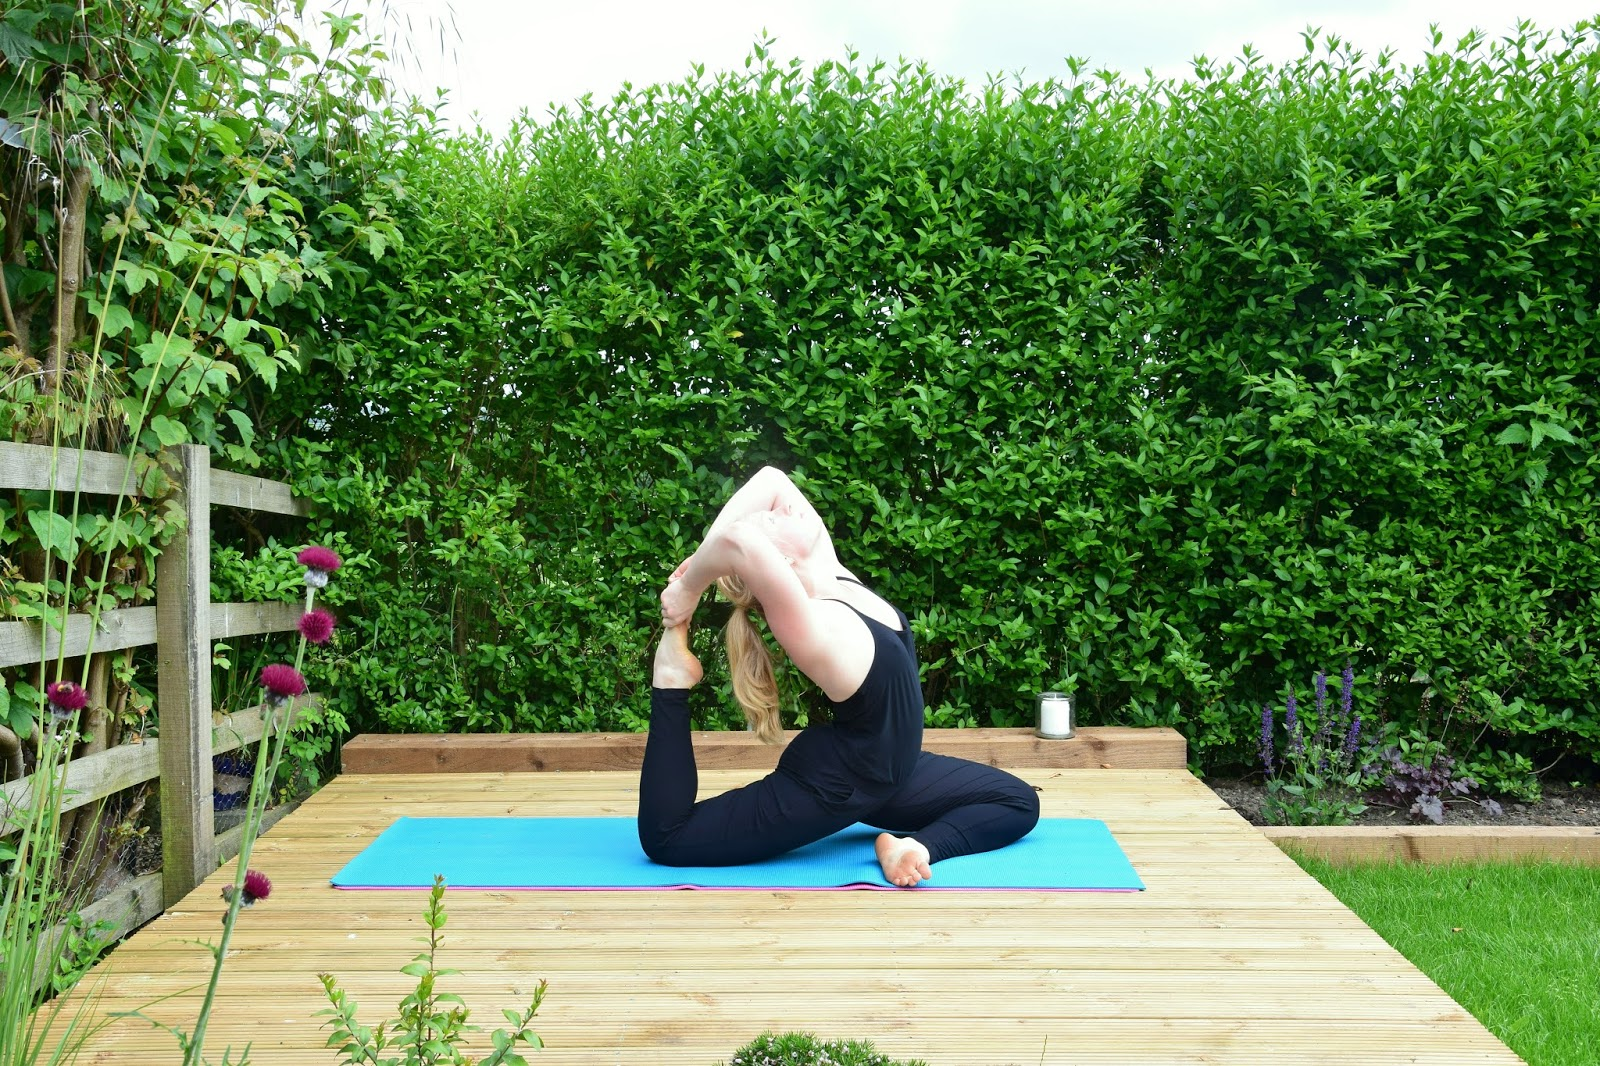 Tips for practicing yoga and doing workouts when it's hot. Via @eleanormayc